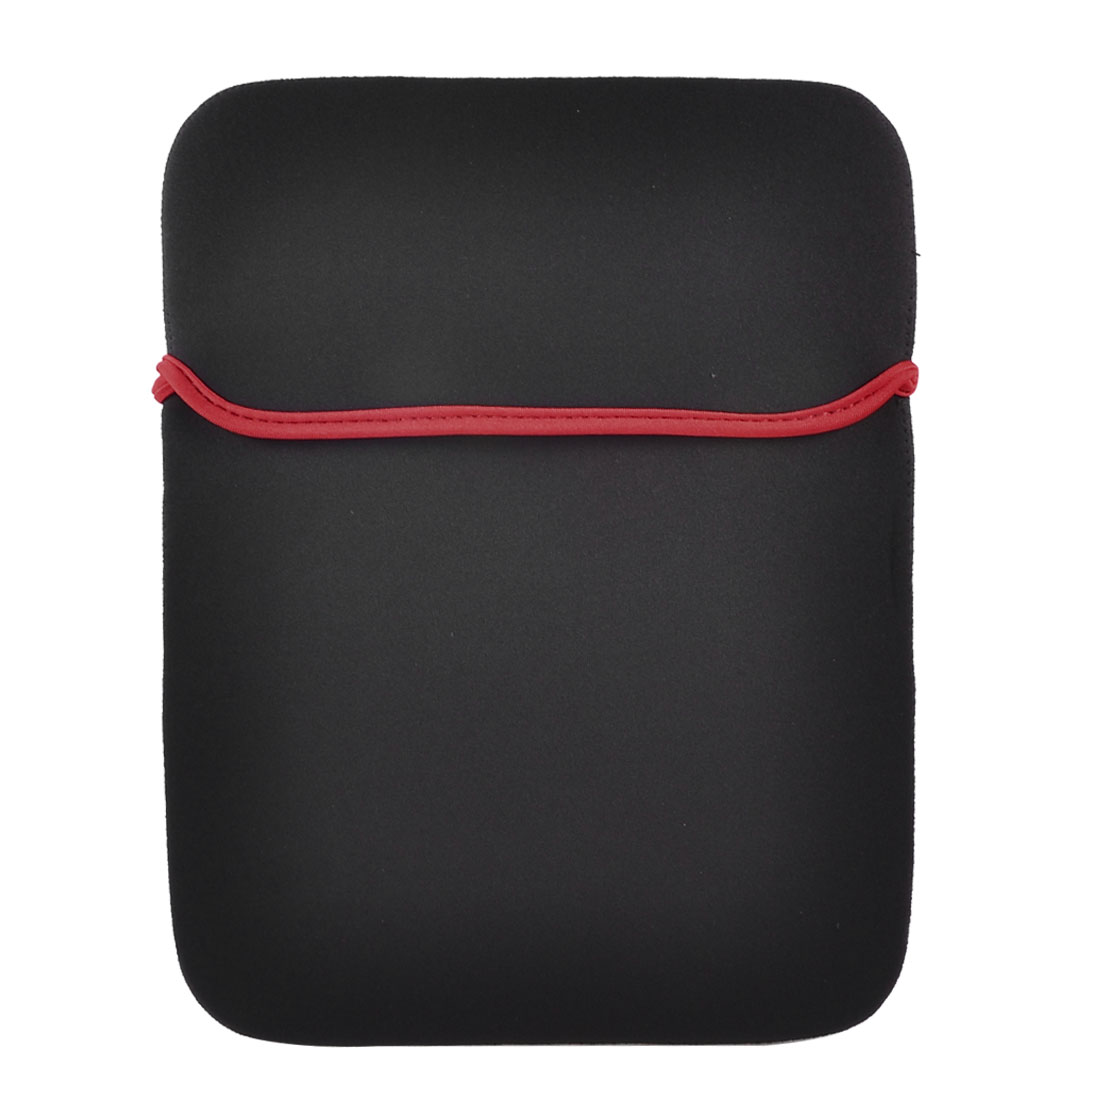 "14"" 14.1"" Laptop Red Brim Black Neoprene Sleeve Bag Case Pouch Cover"